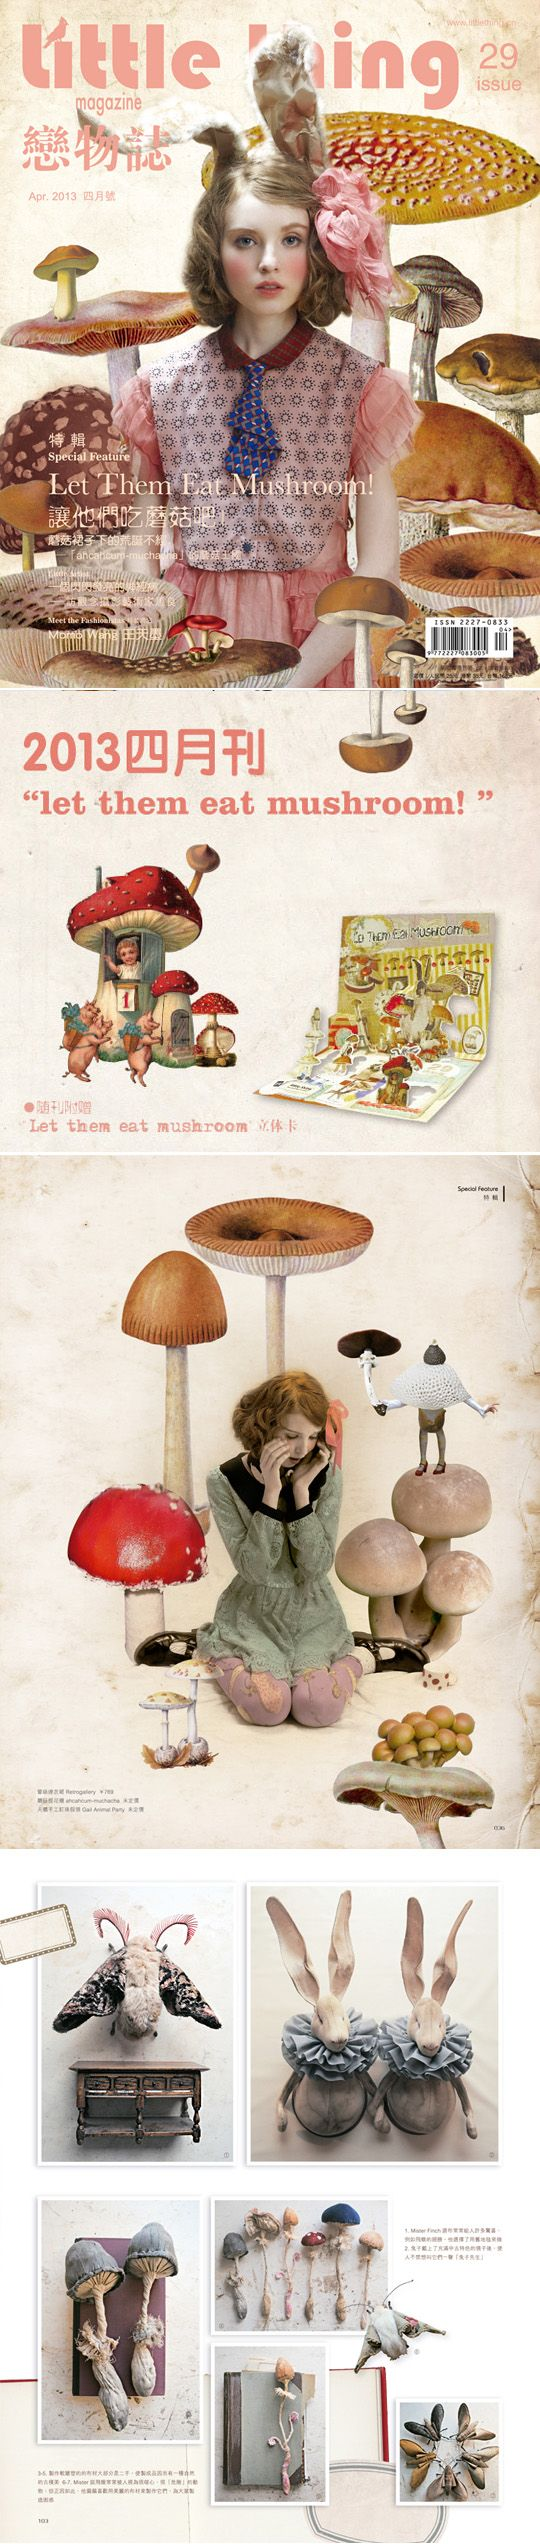 Little Thing #29 * Let them eat mushroom *